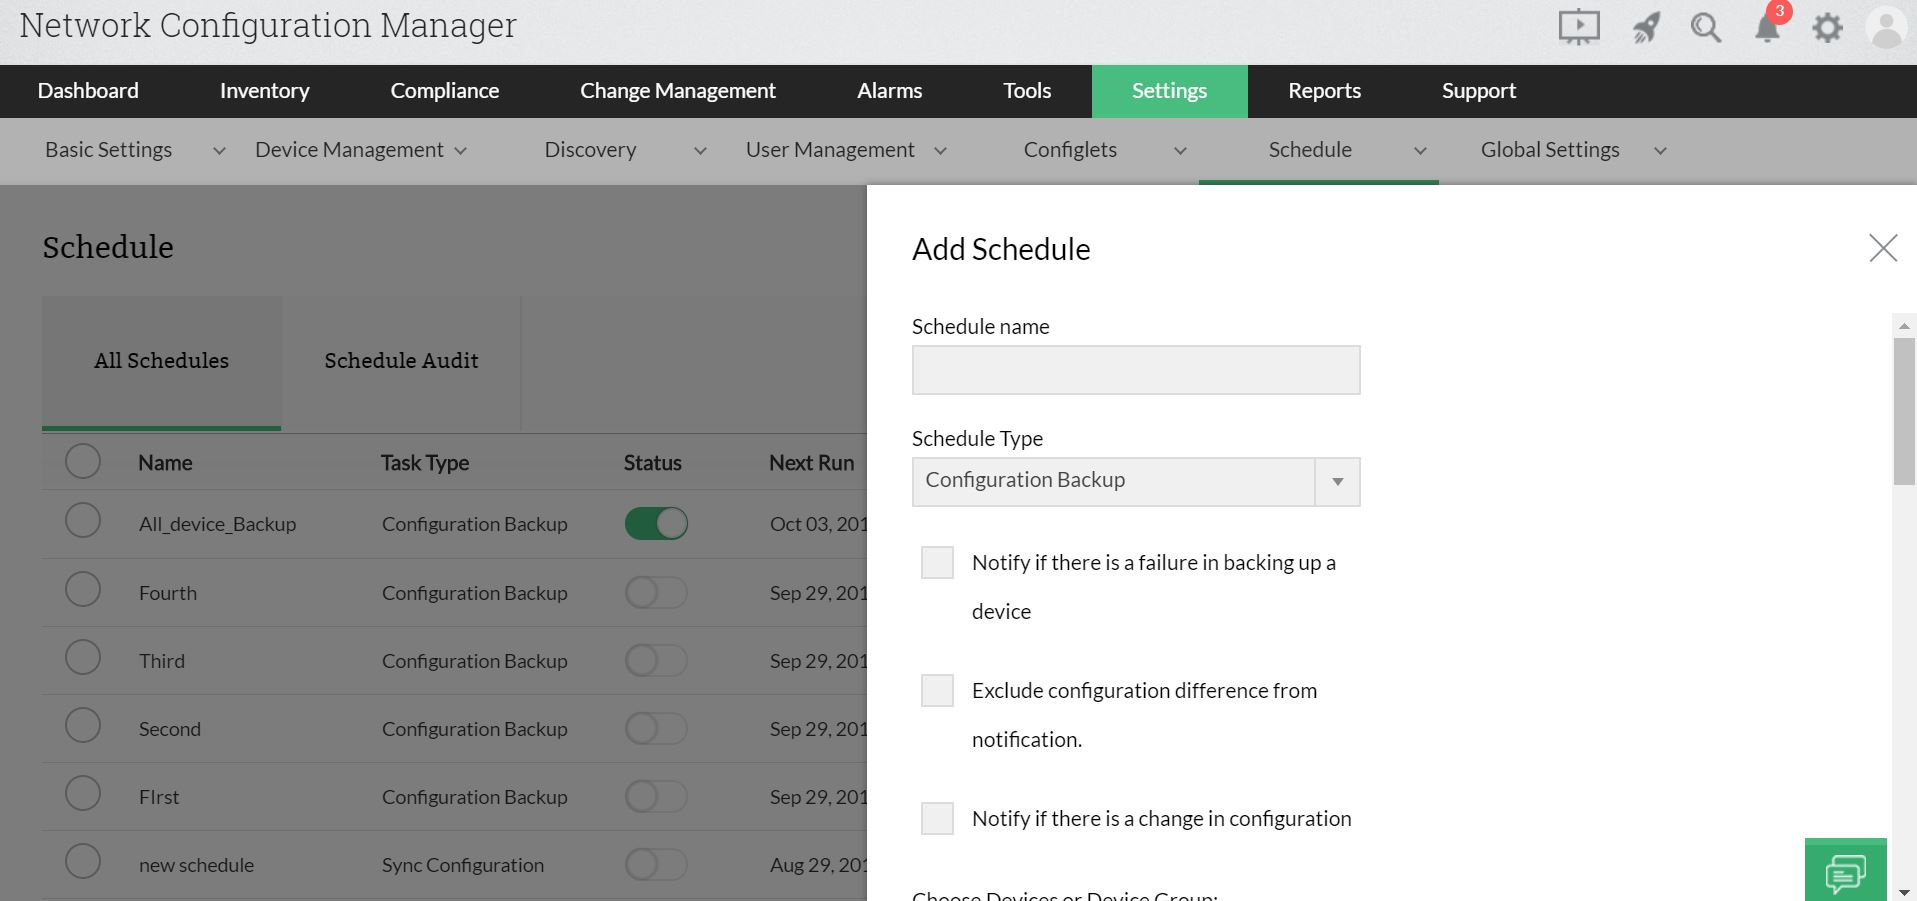 Scheduling Configuration Backup